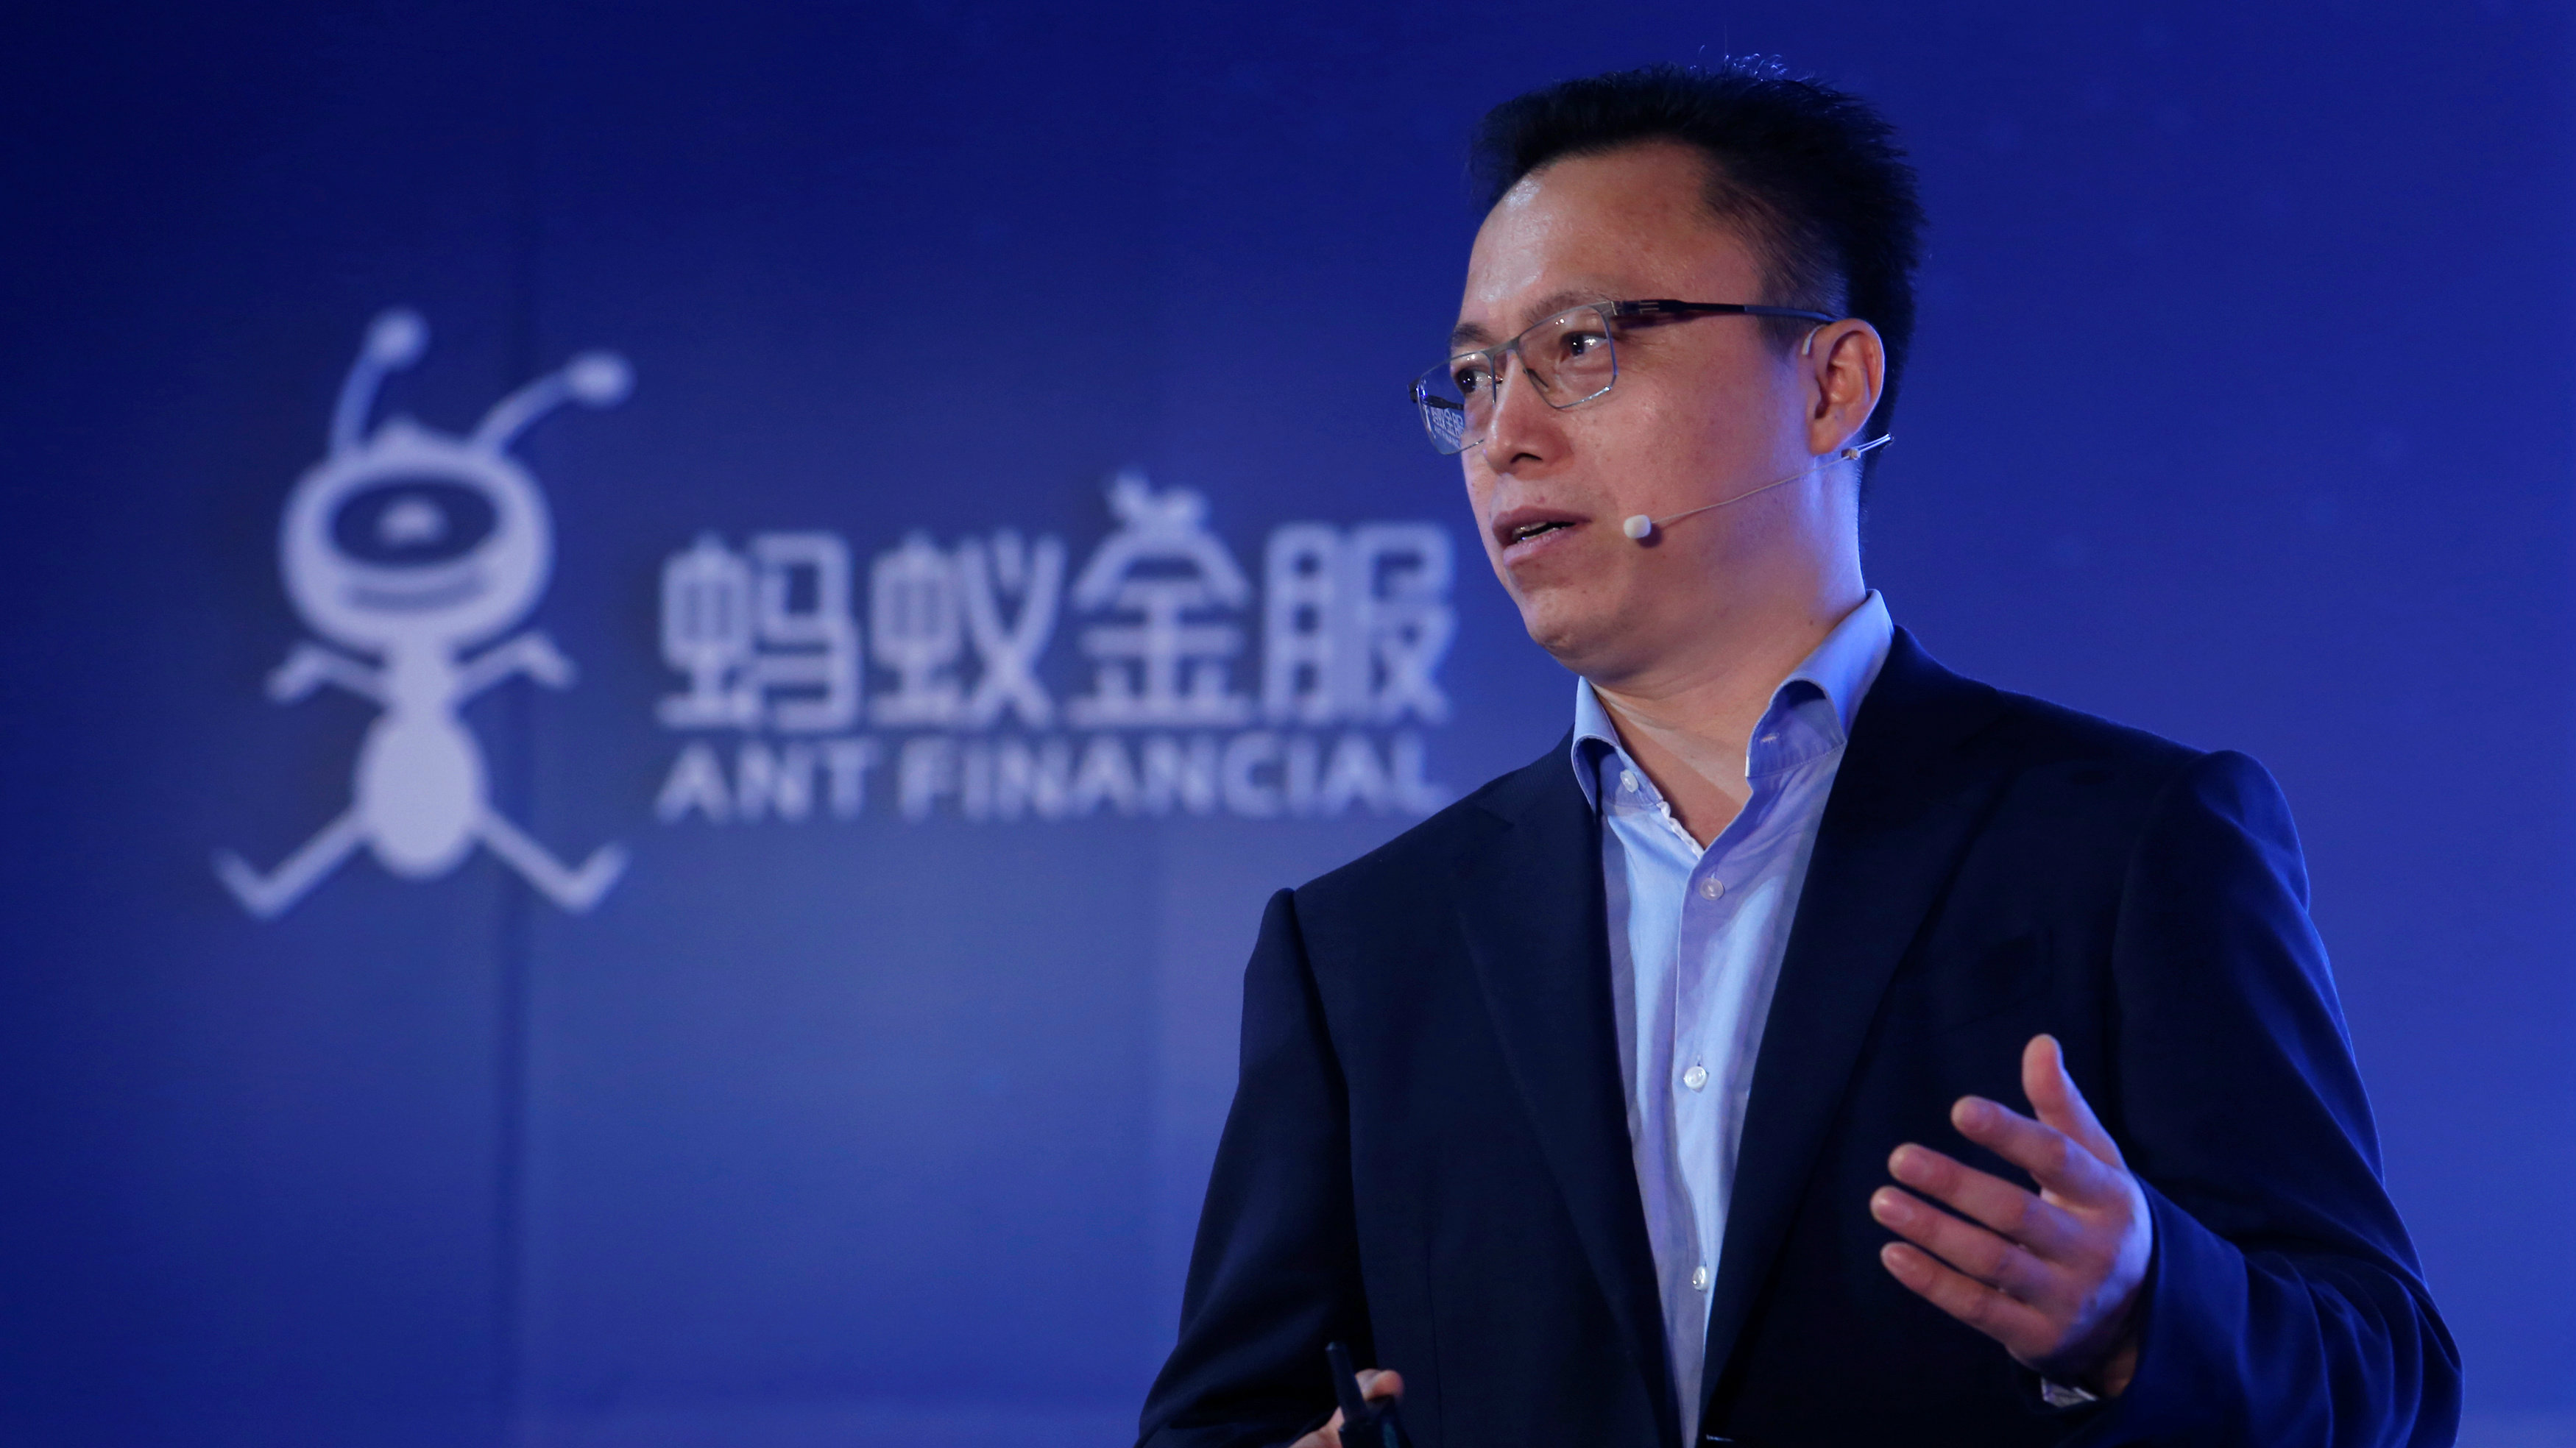 Eric Jing of Ant Financial